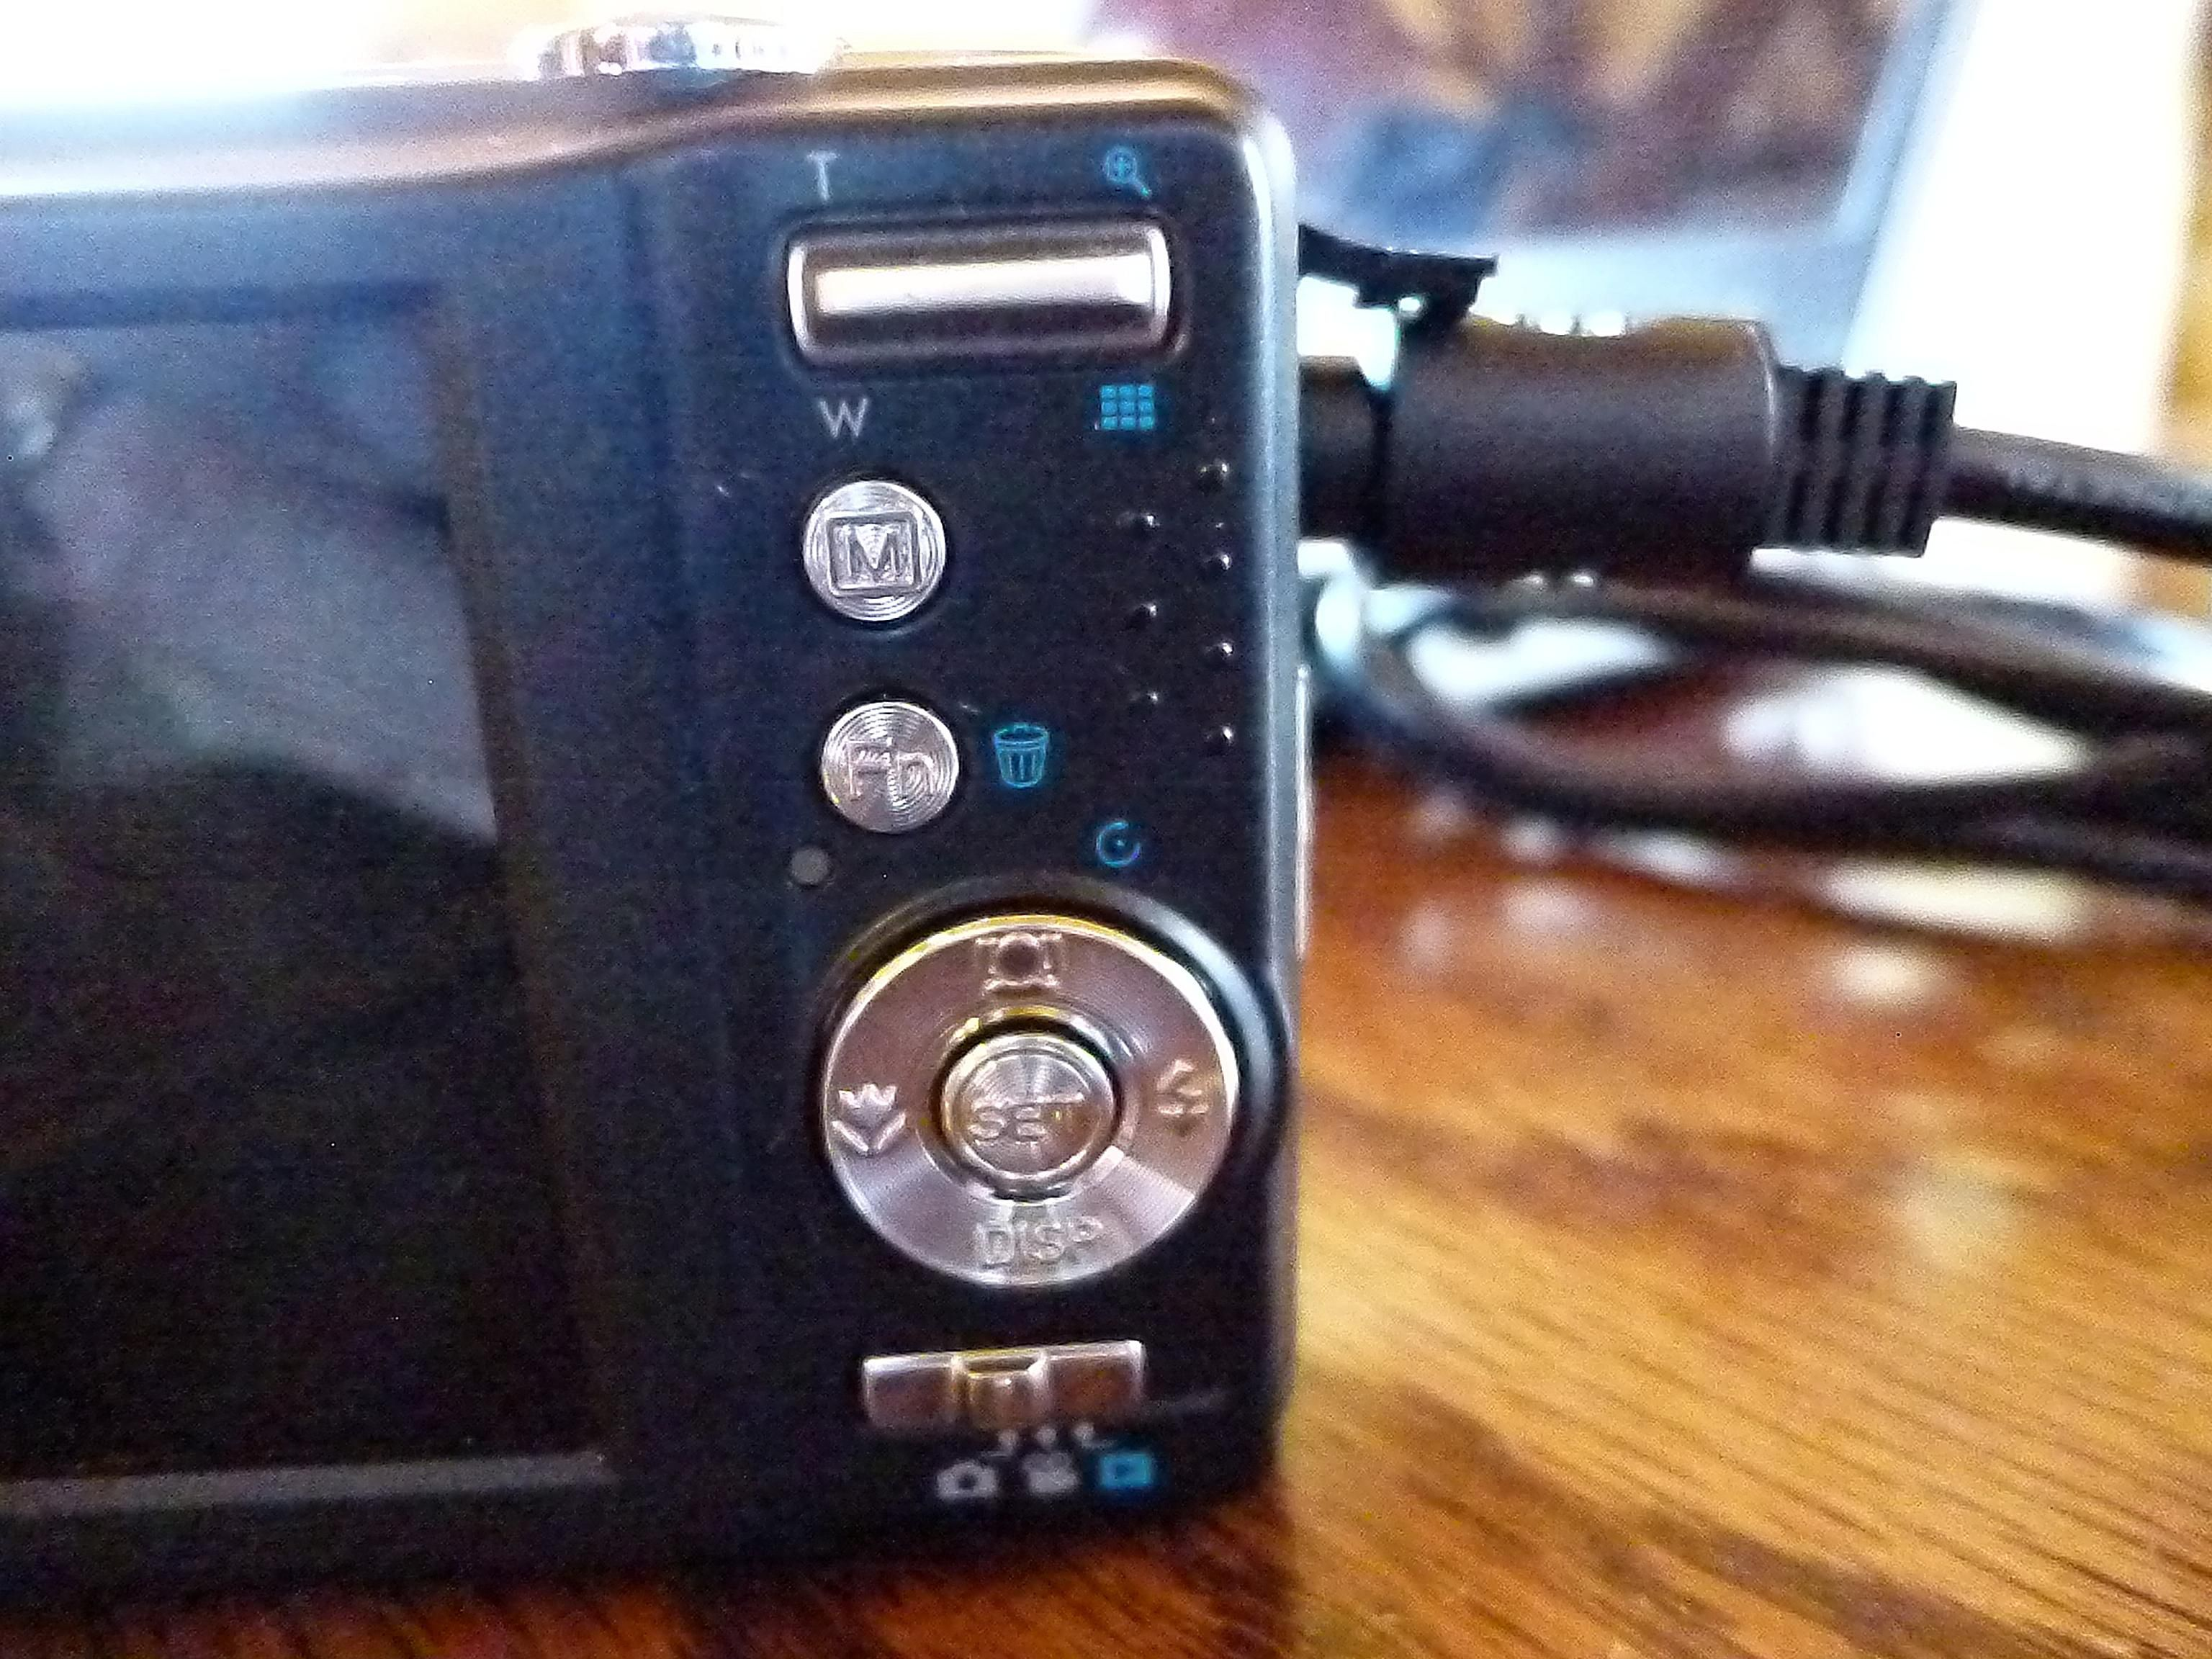 USB connected to camera